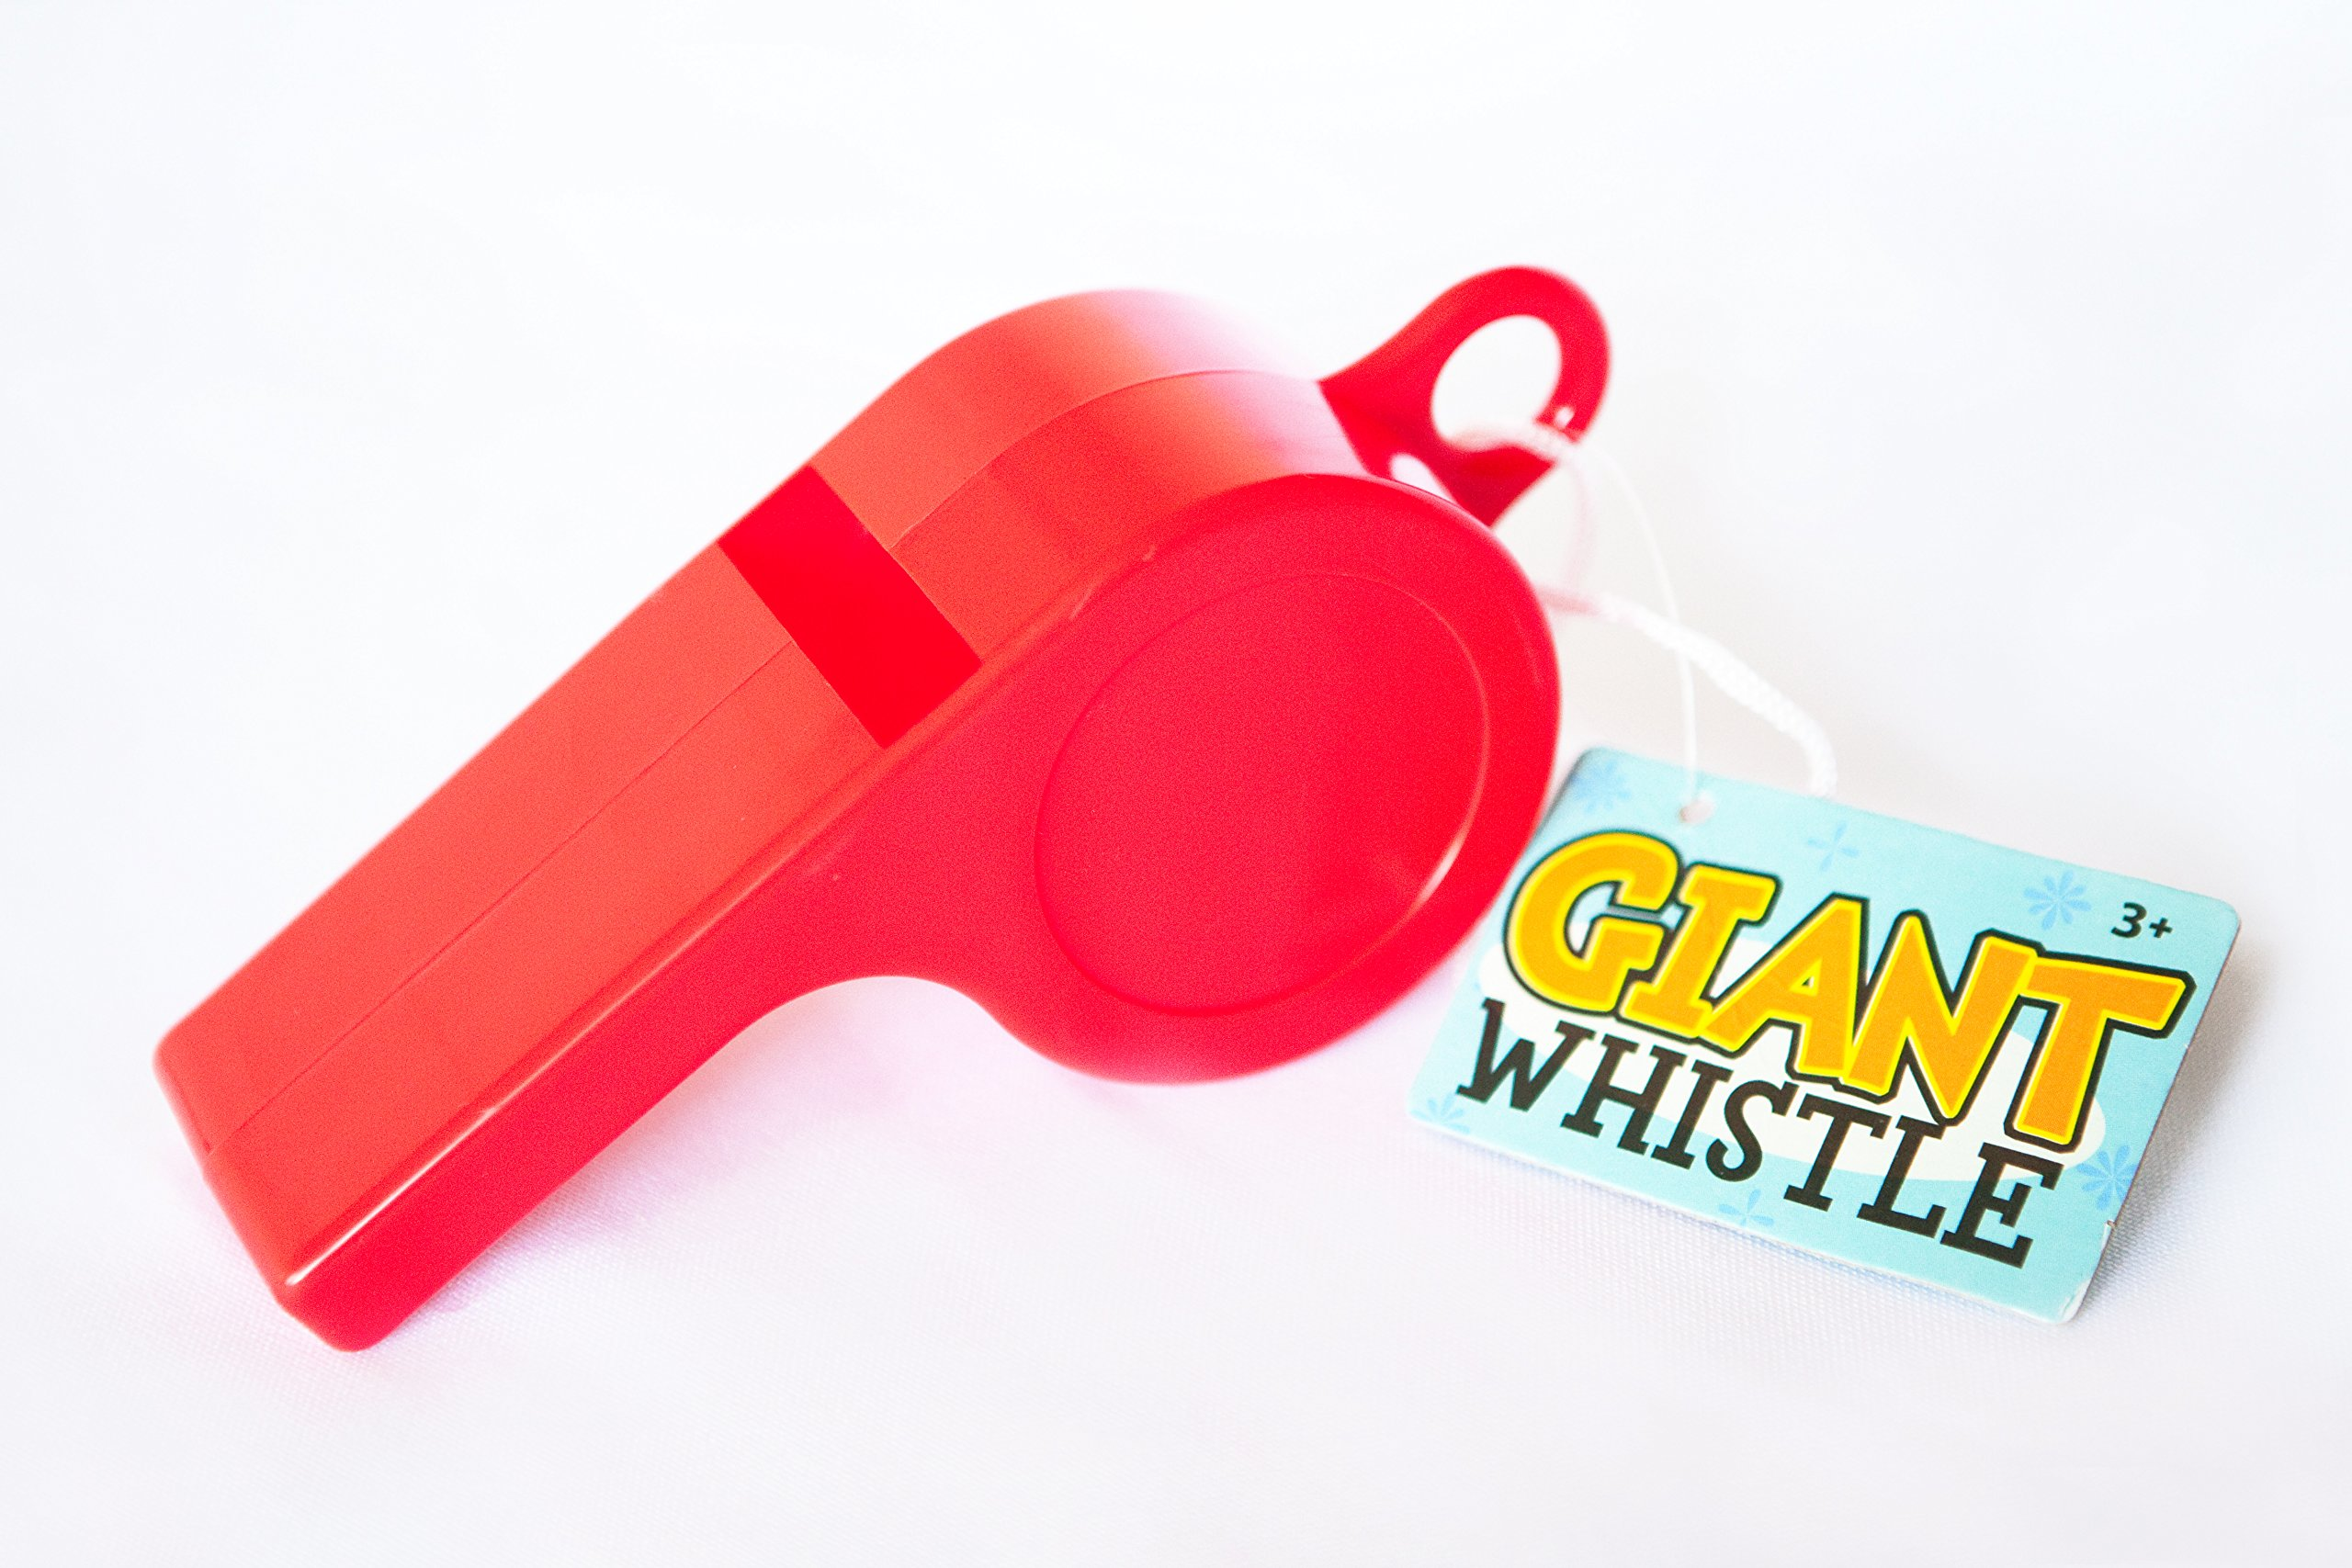 Giant Whistle Necklace for Kids, Effective Speech Therapy Toy and Speech Therapy Game. Helps with speech development in children and toddlers with delays. Make Speech Therapy material FUN! by Hit Delights